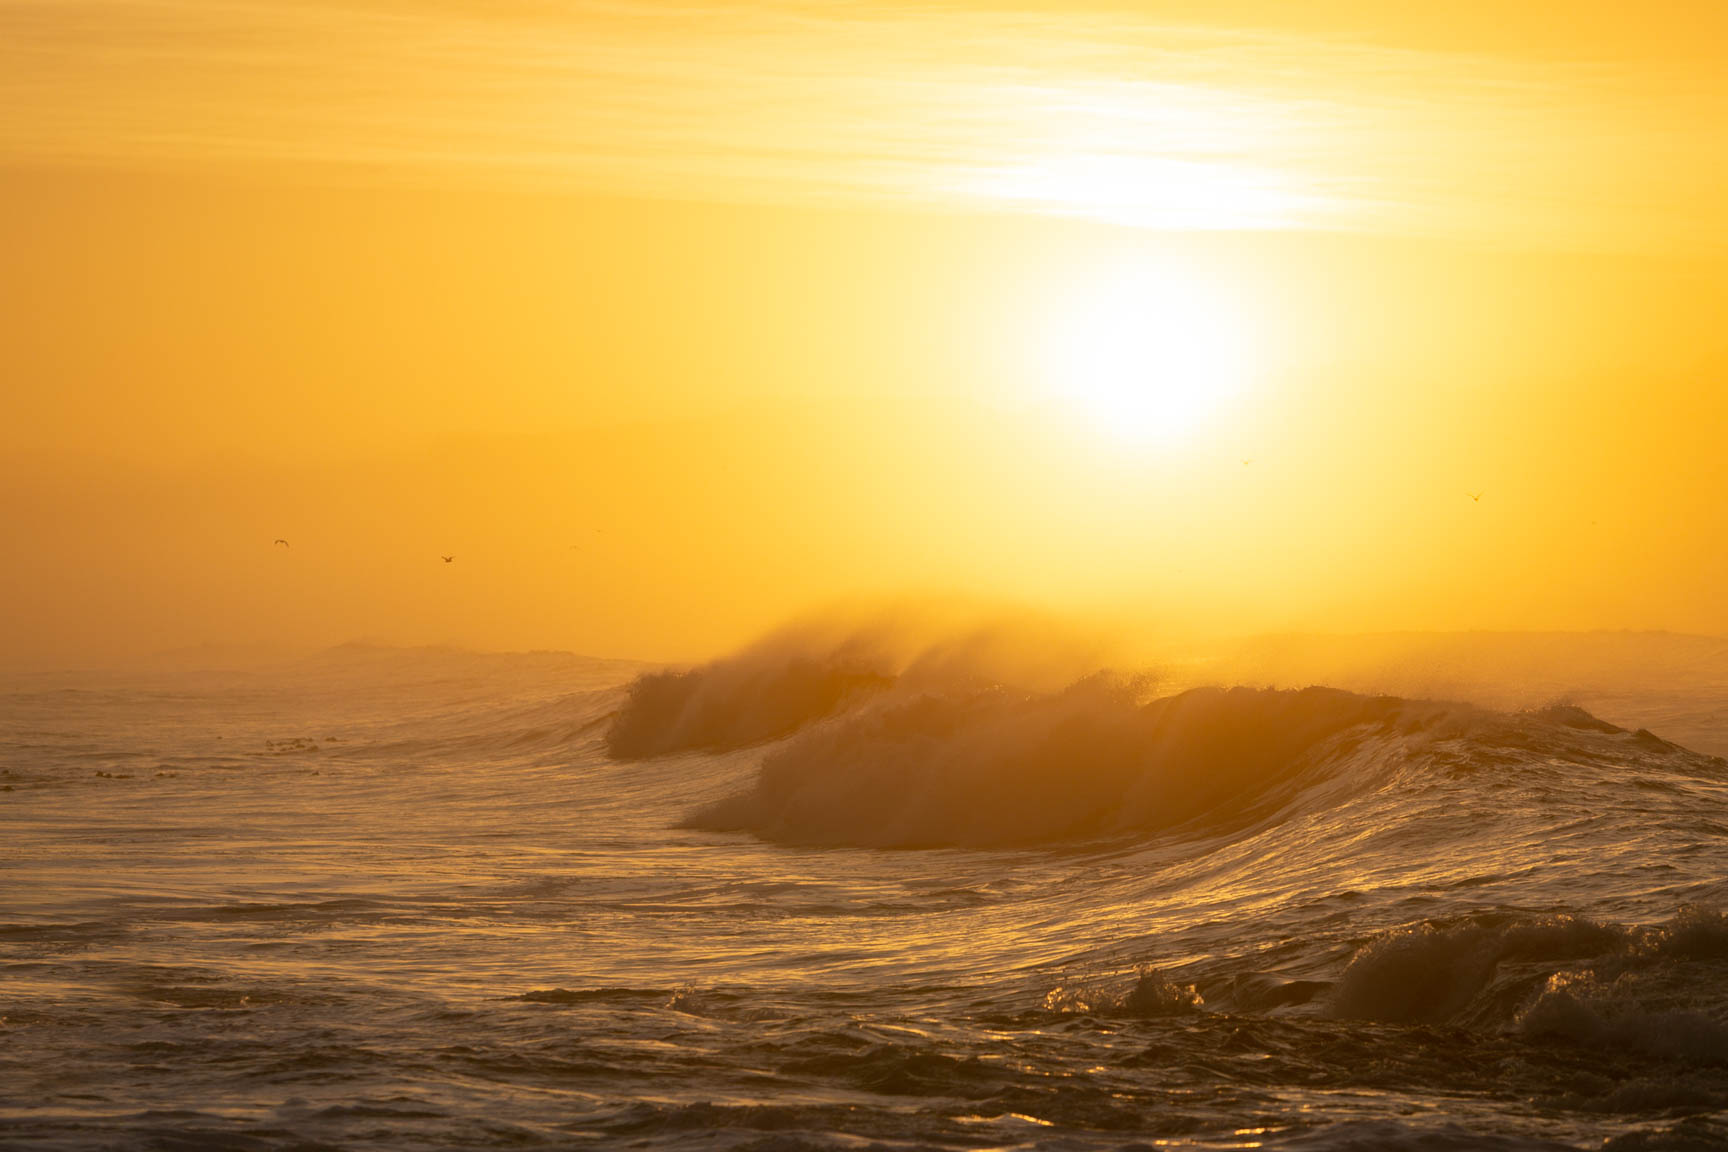 Sunrise over False Bay with waves and birds